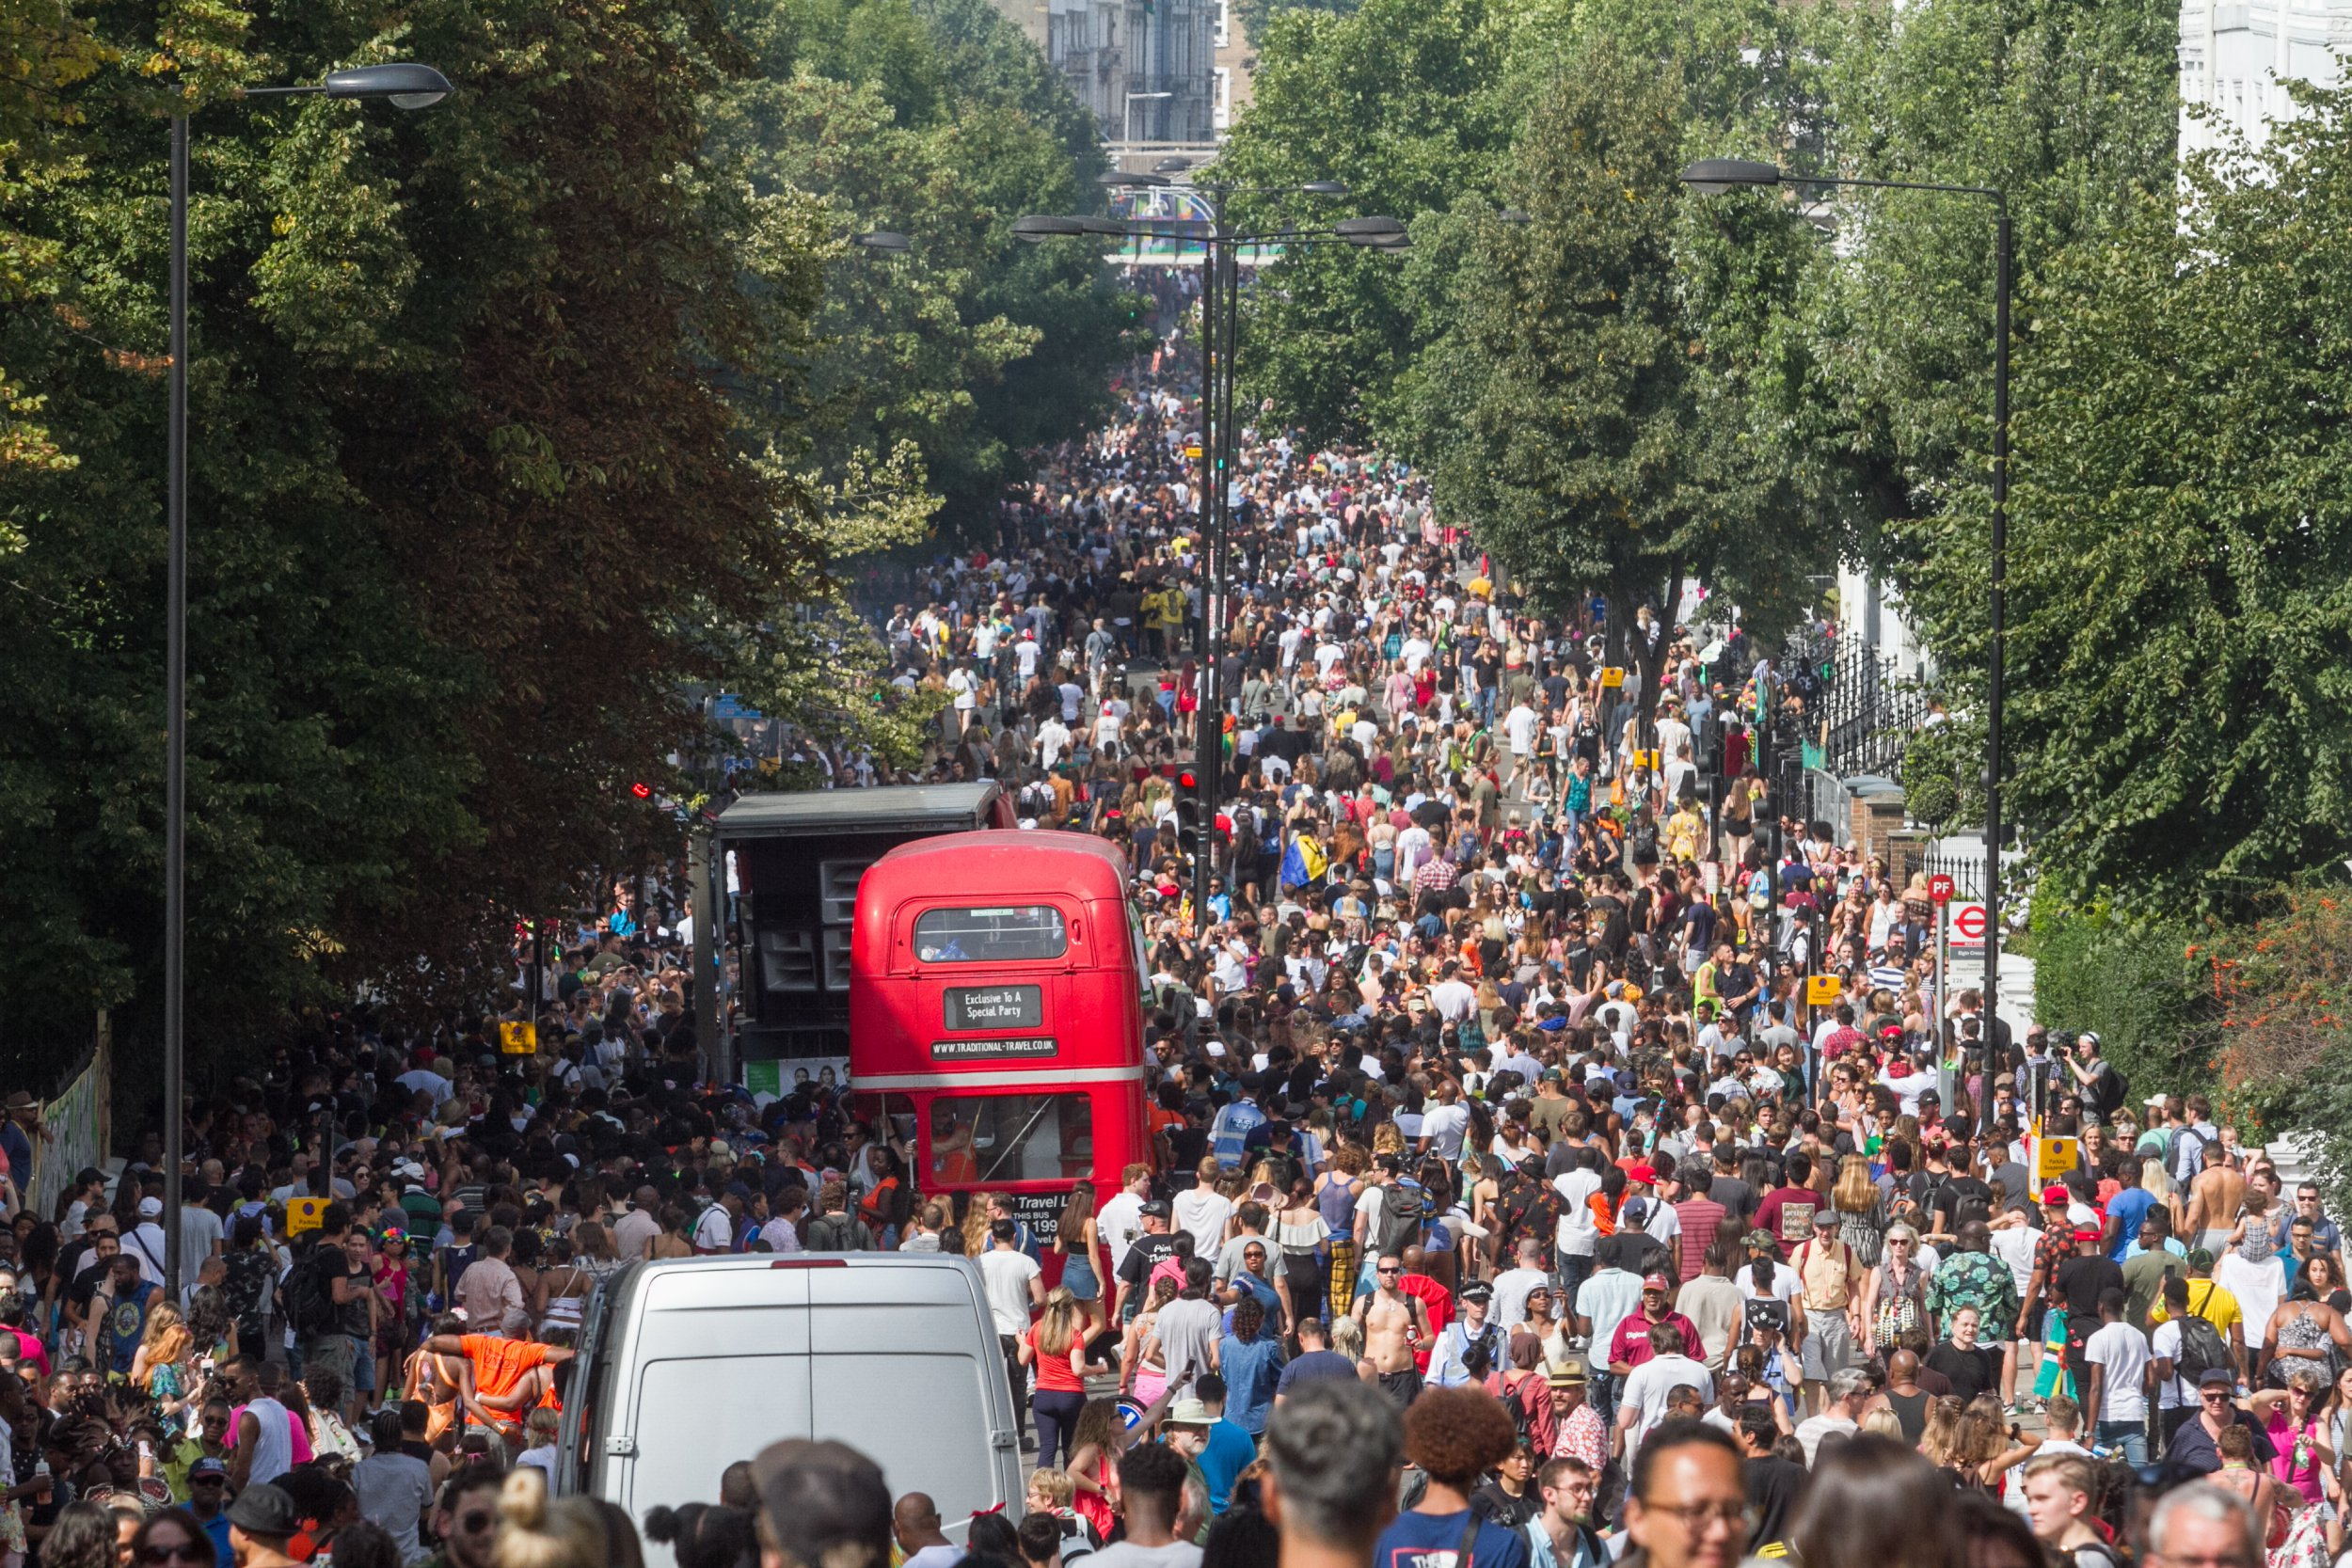 When is Notting Hill Carnival 2018 – dates, map, route and line-up